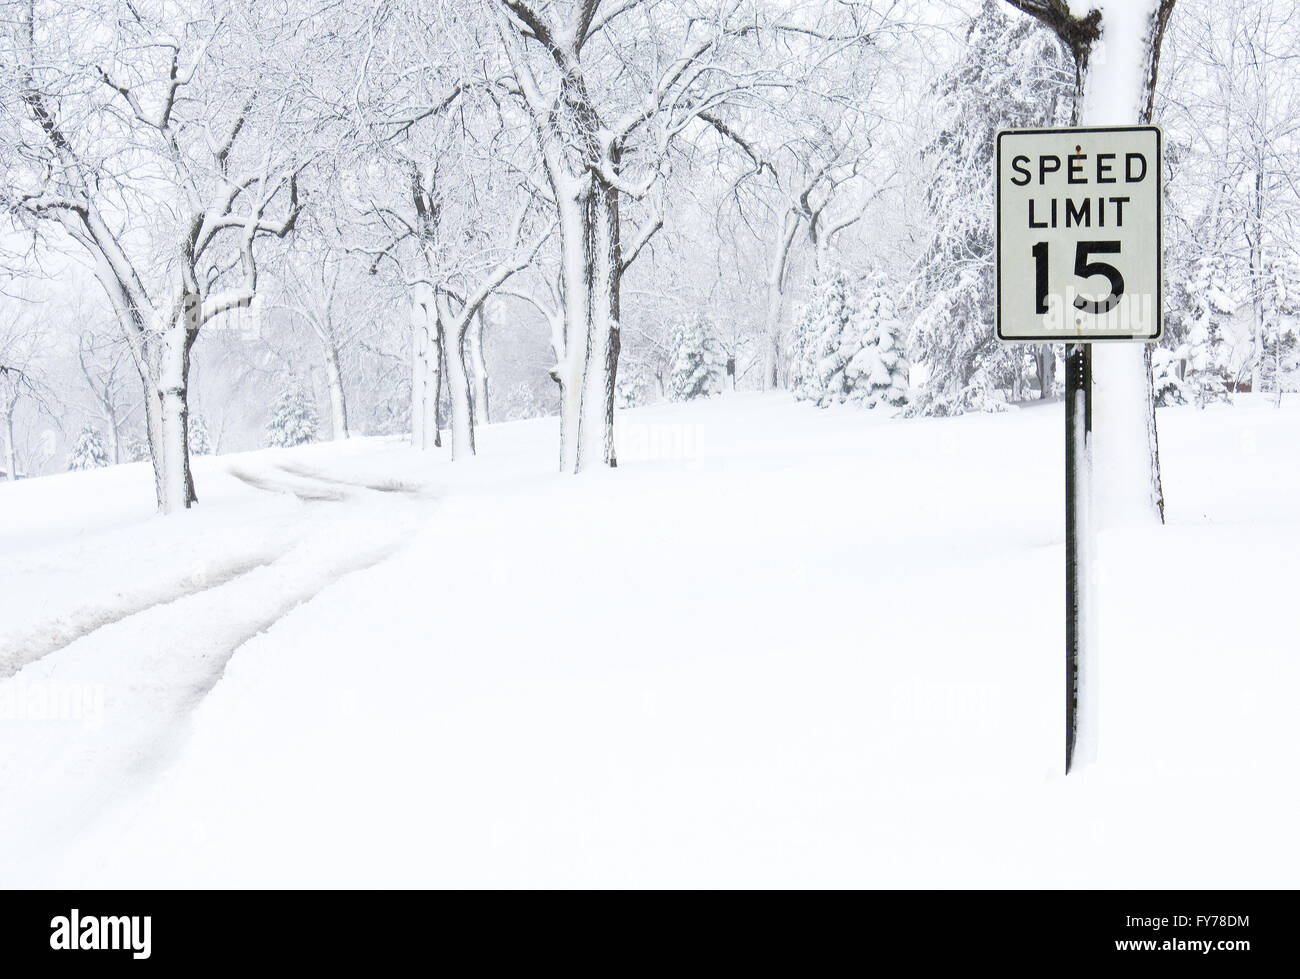 A speed limit sign on a snow covered road - Stock Image